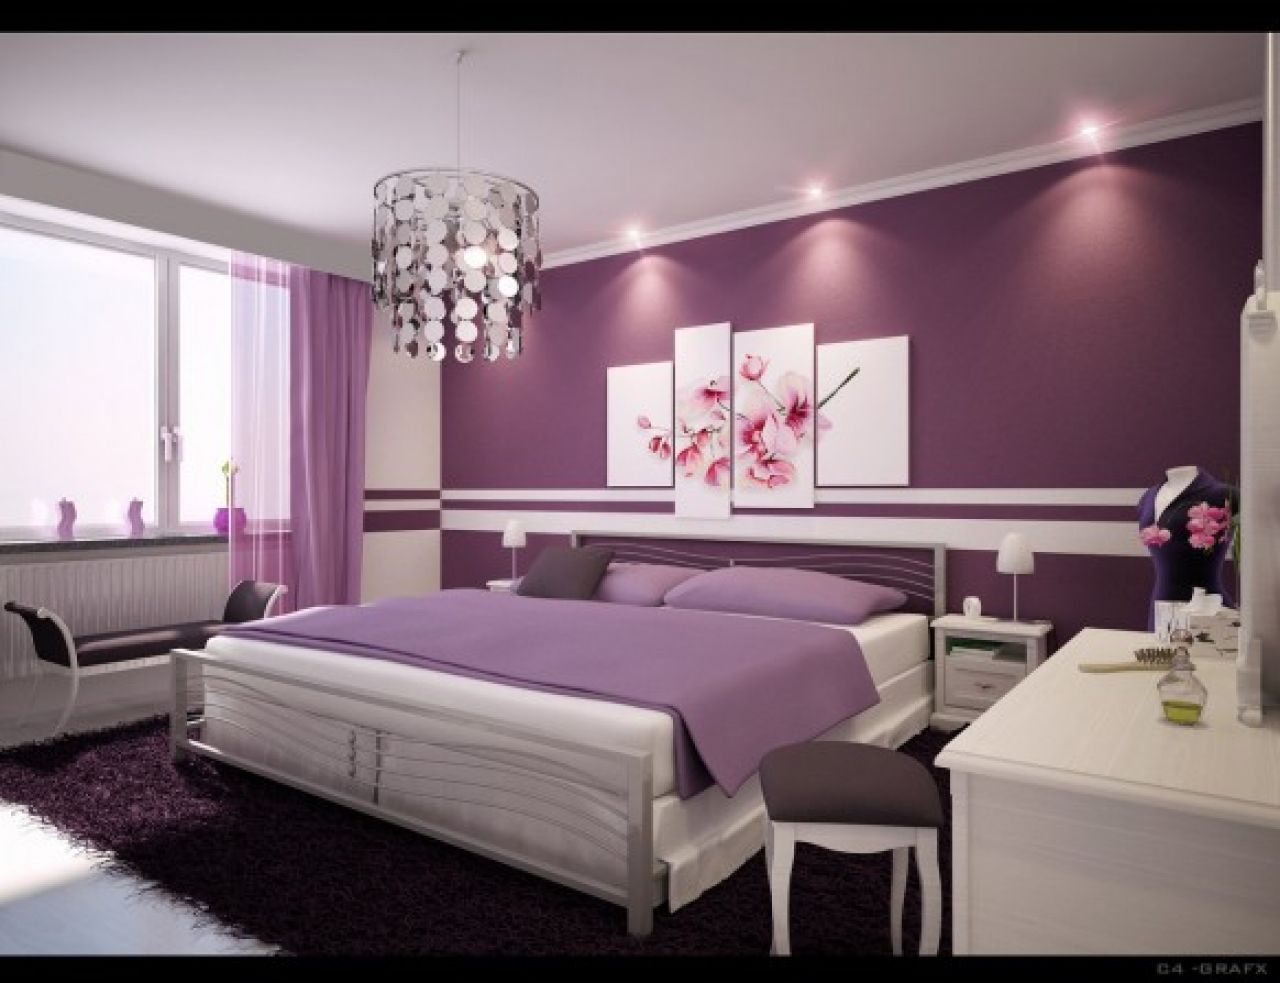 Modern Purple And White Themes Age Room Ideas With Awesome Silver Metal Bed Frame That Have Mattress Complete The Bedding